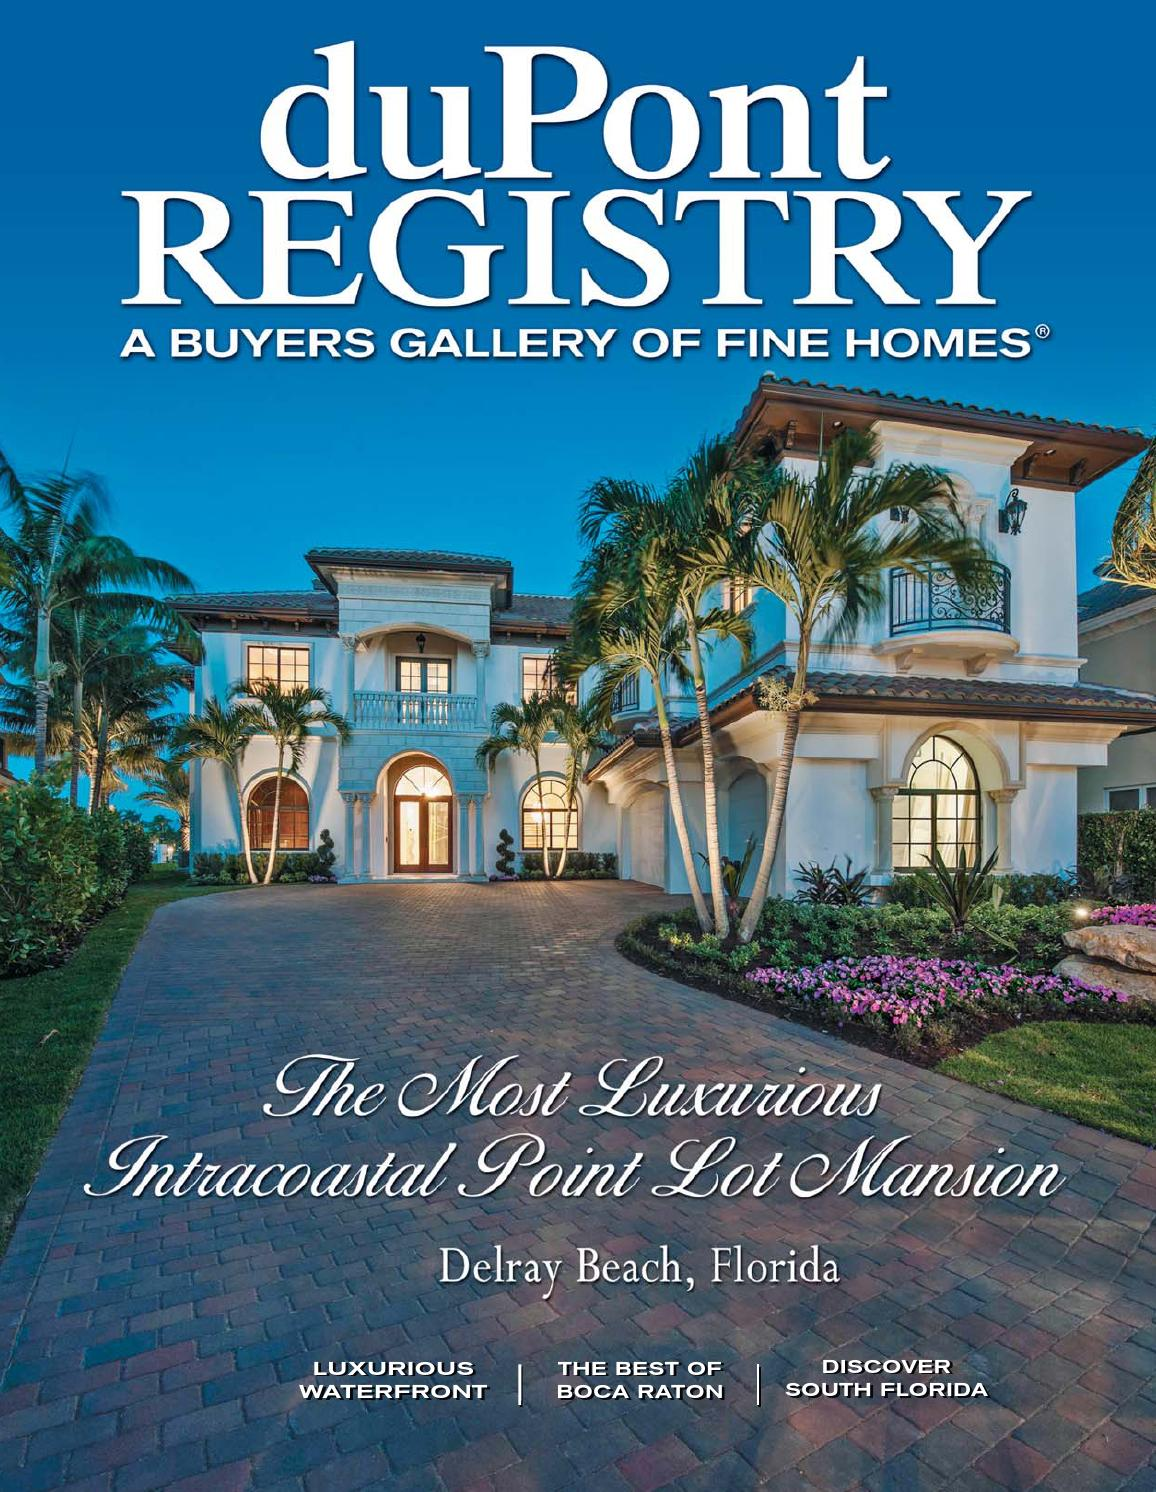 duPontREGISTRY Homes March 2015 by duPont REGISTRY - issuu